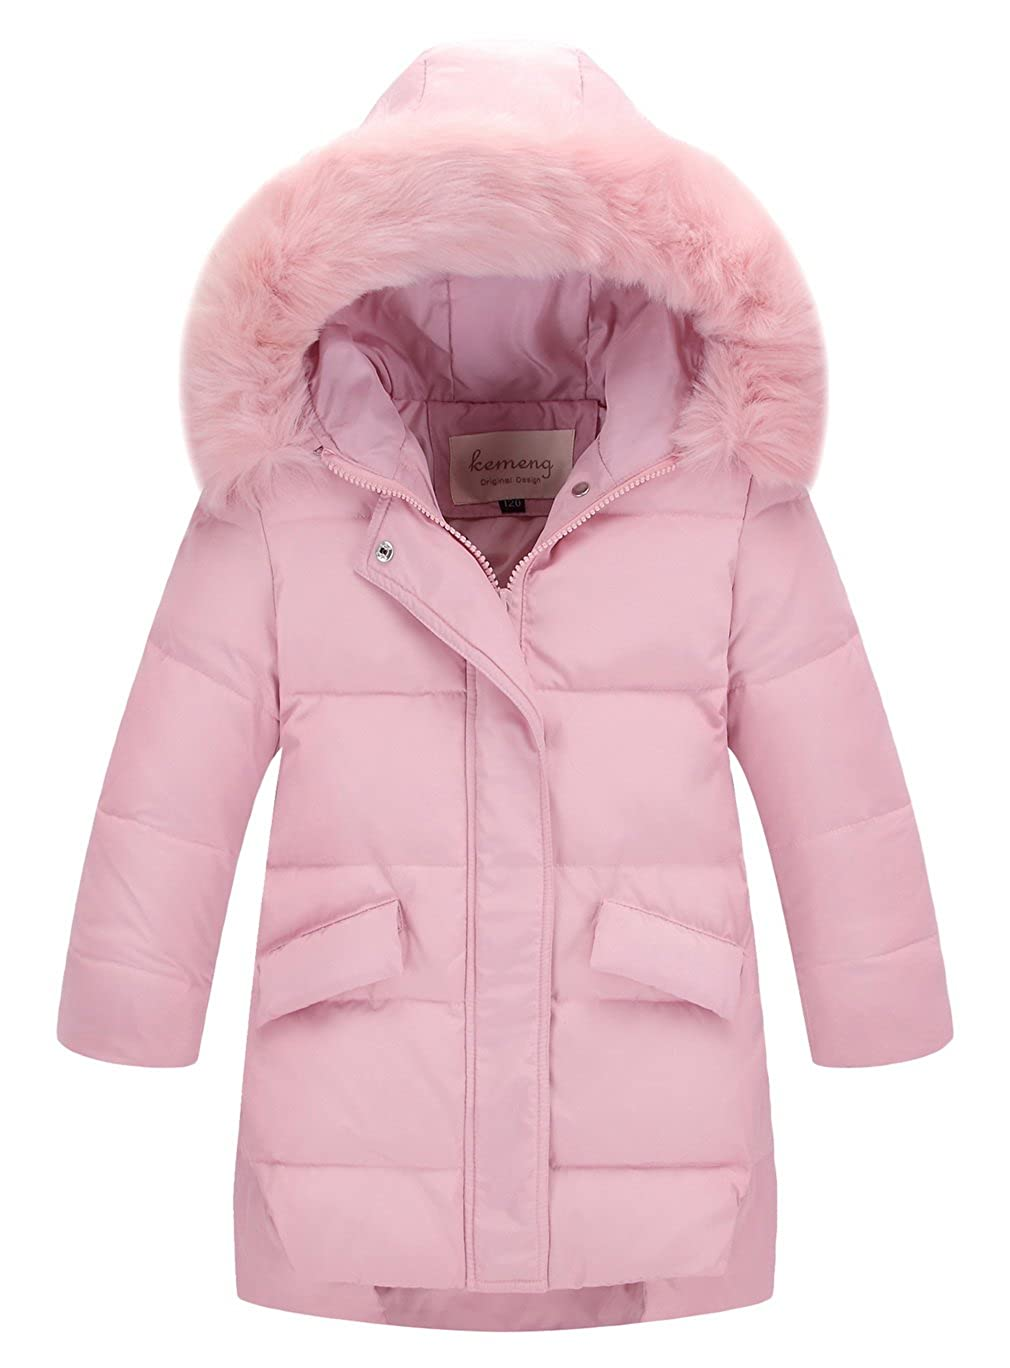 La Vogue Girls Winter Parka Down Coat Puffer Jacket Padded Overcoat